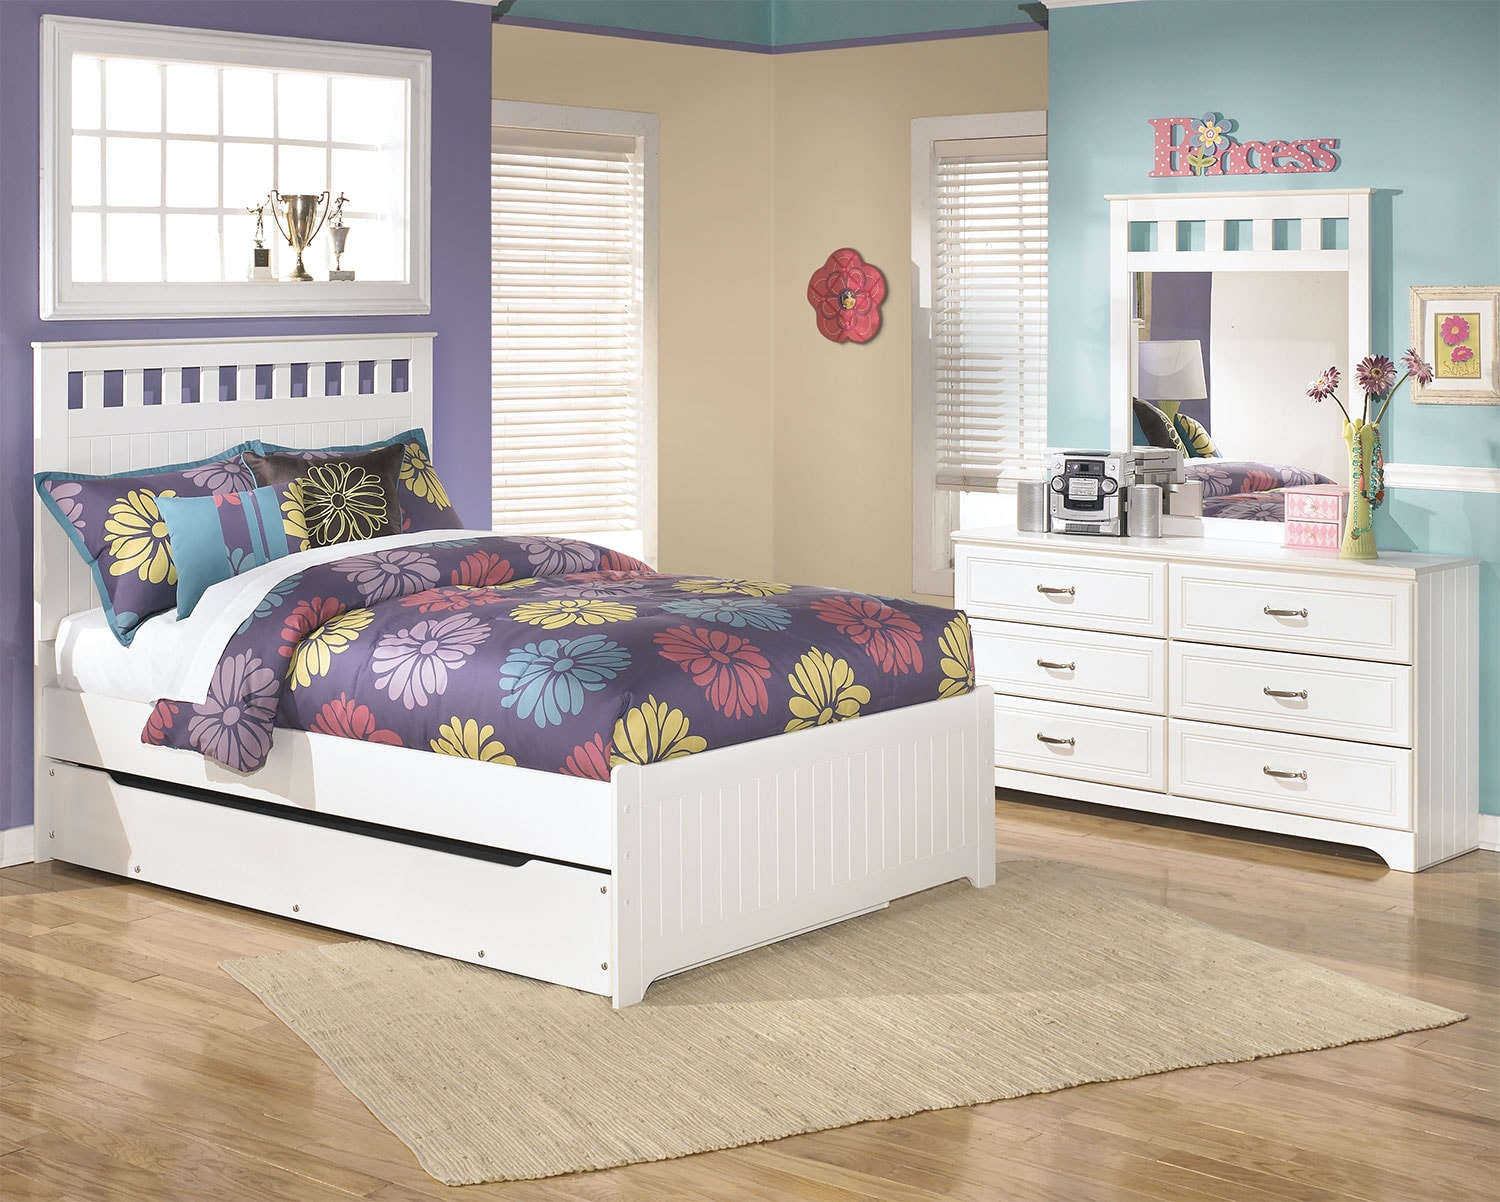 Lulu 5-Piece Full Panel Bed Package with Trundle